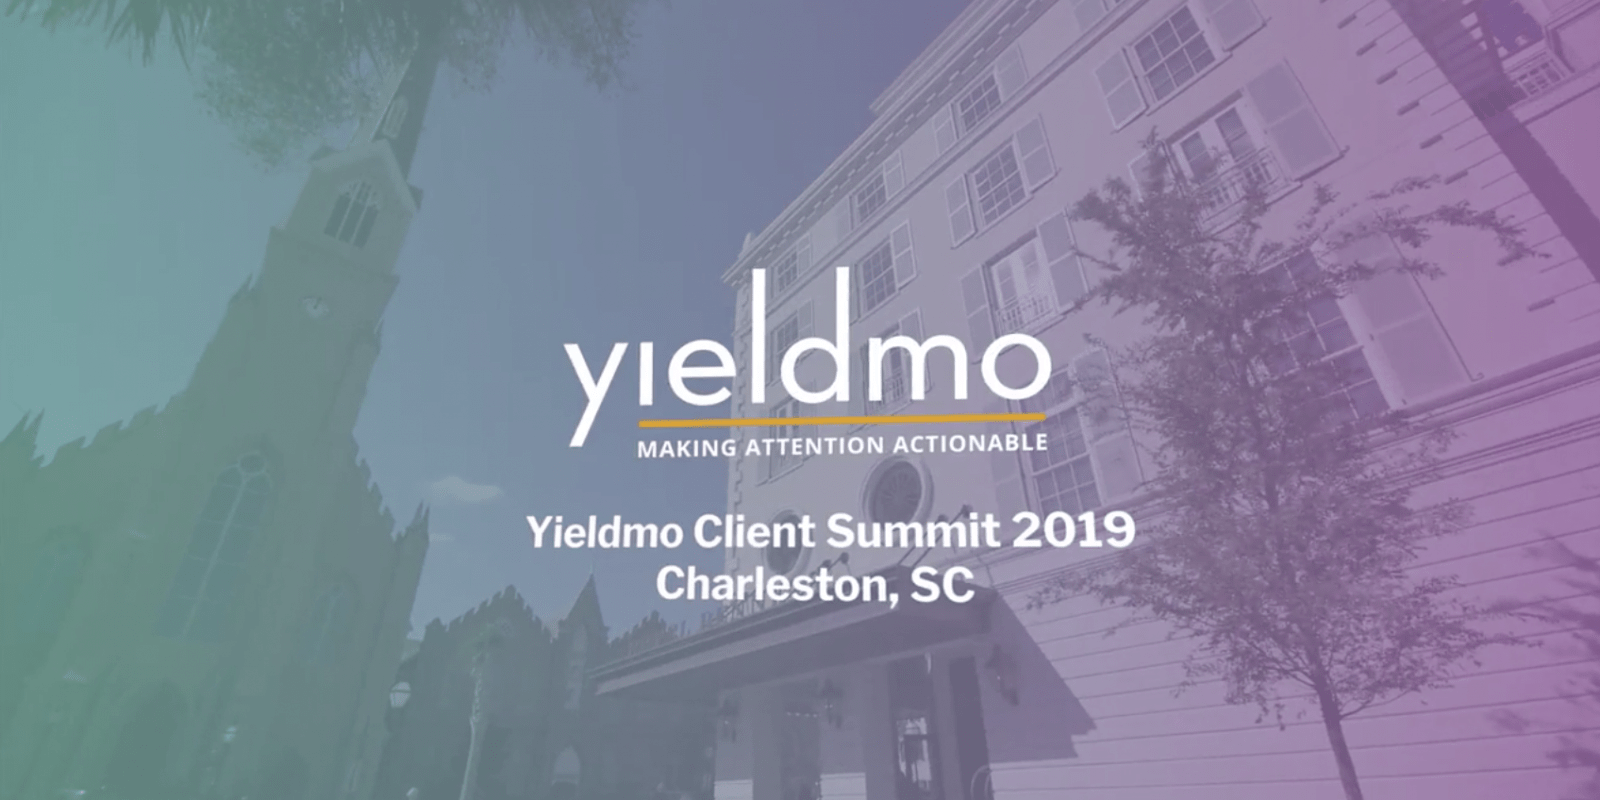 Yieldmo Client Summit: Making Attention Actionable